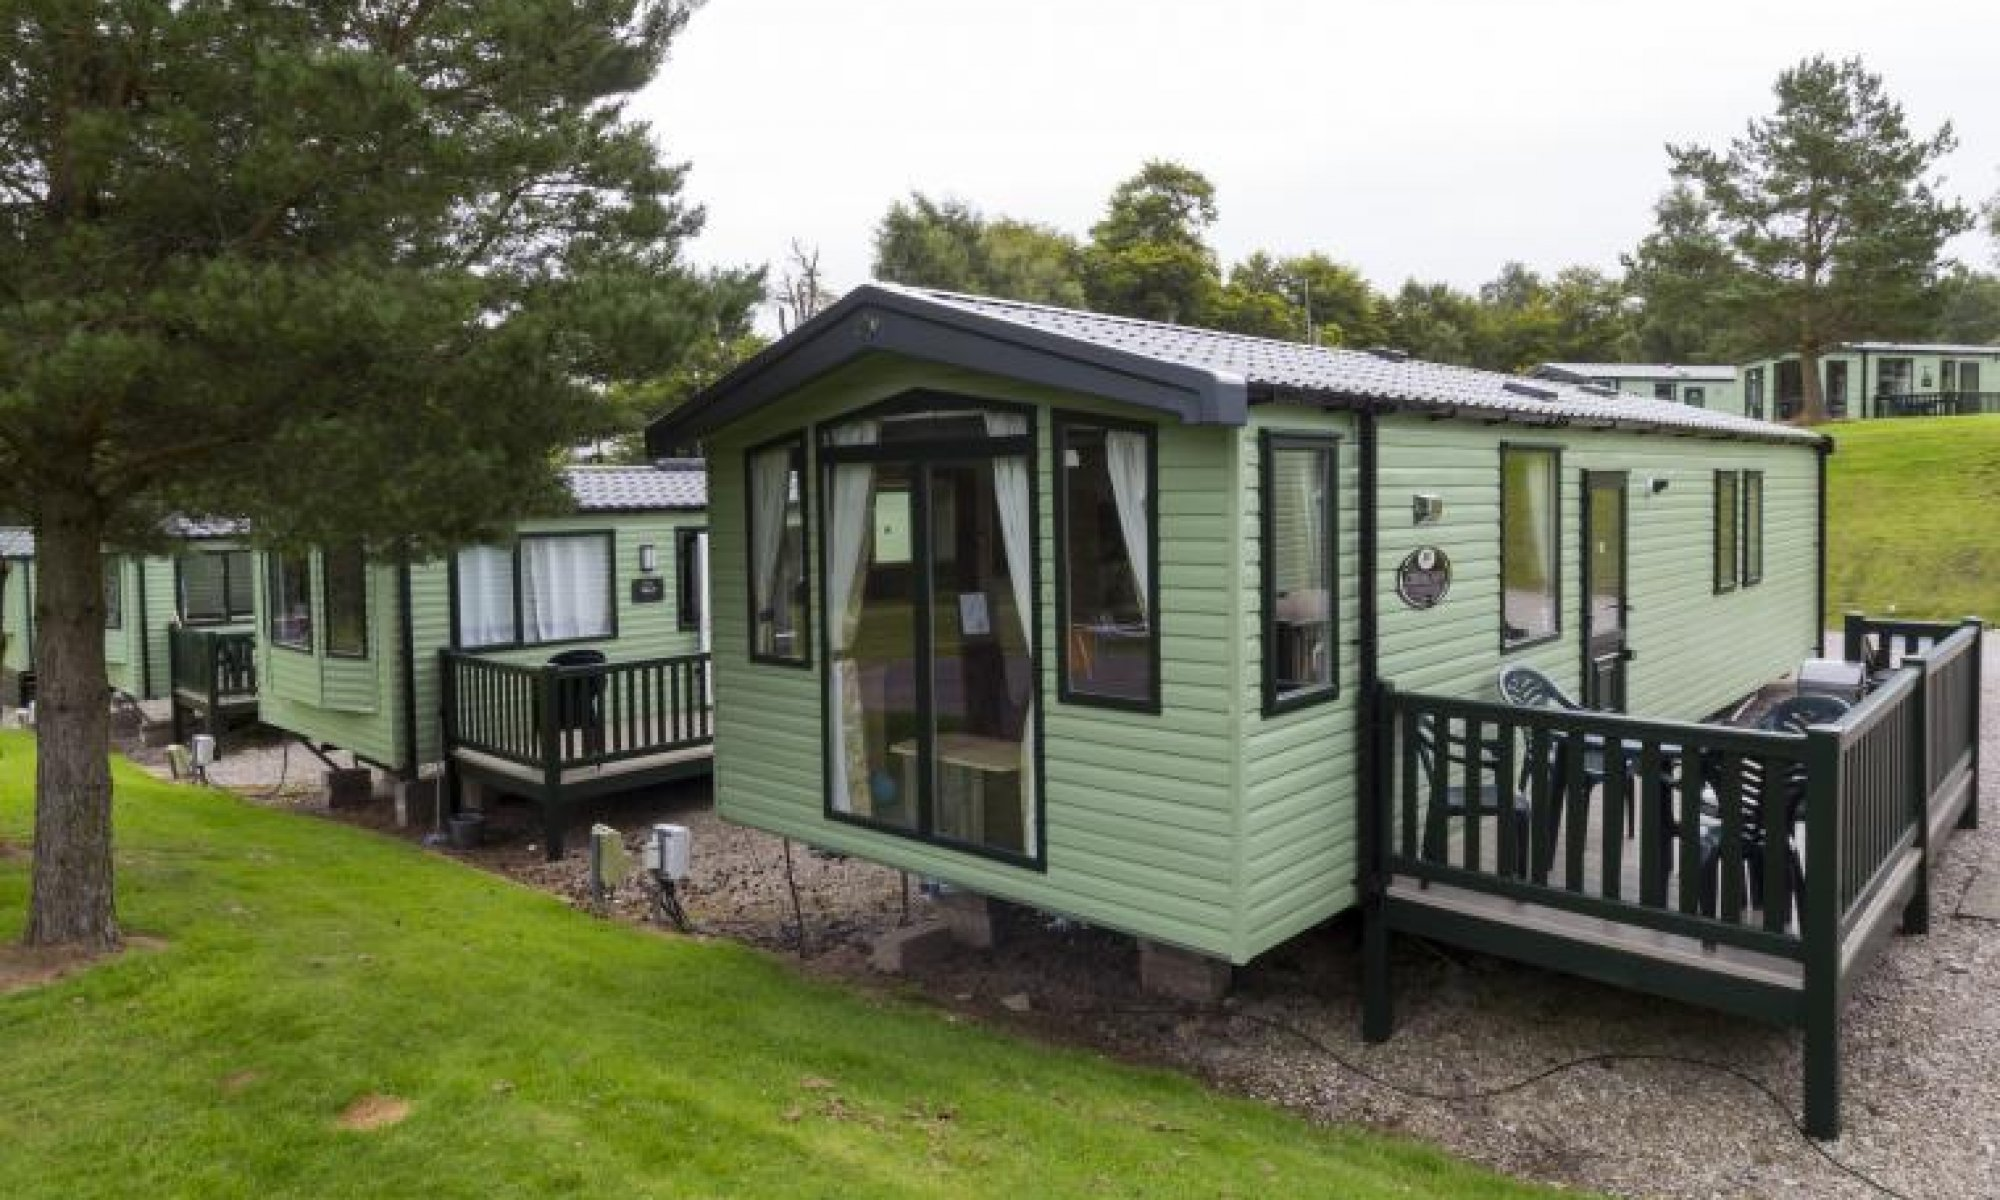 Dog friendly caravans at Hunters Quay Holiday Village